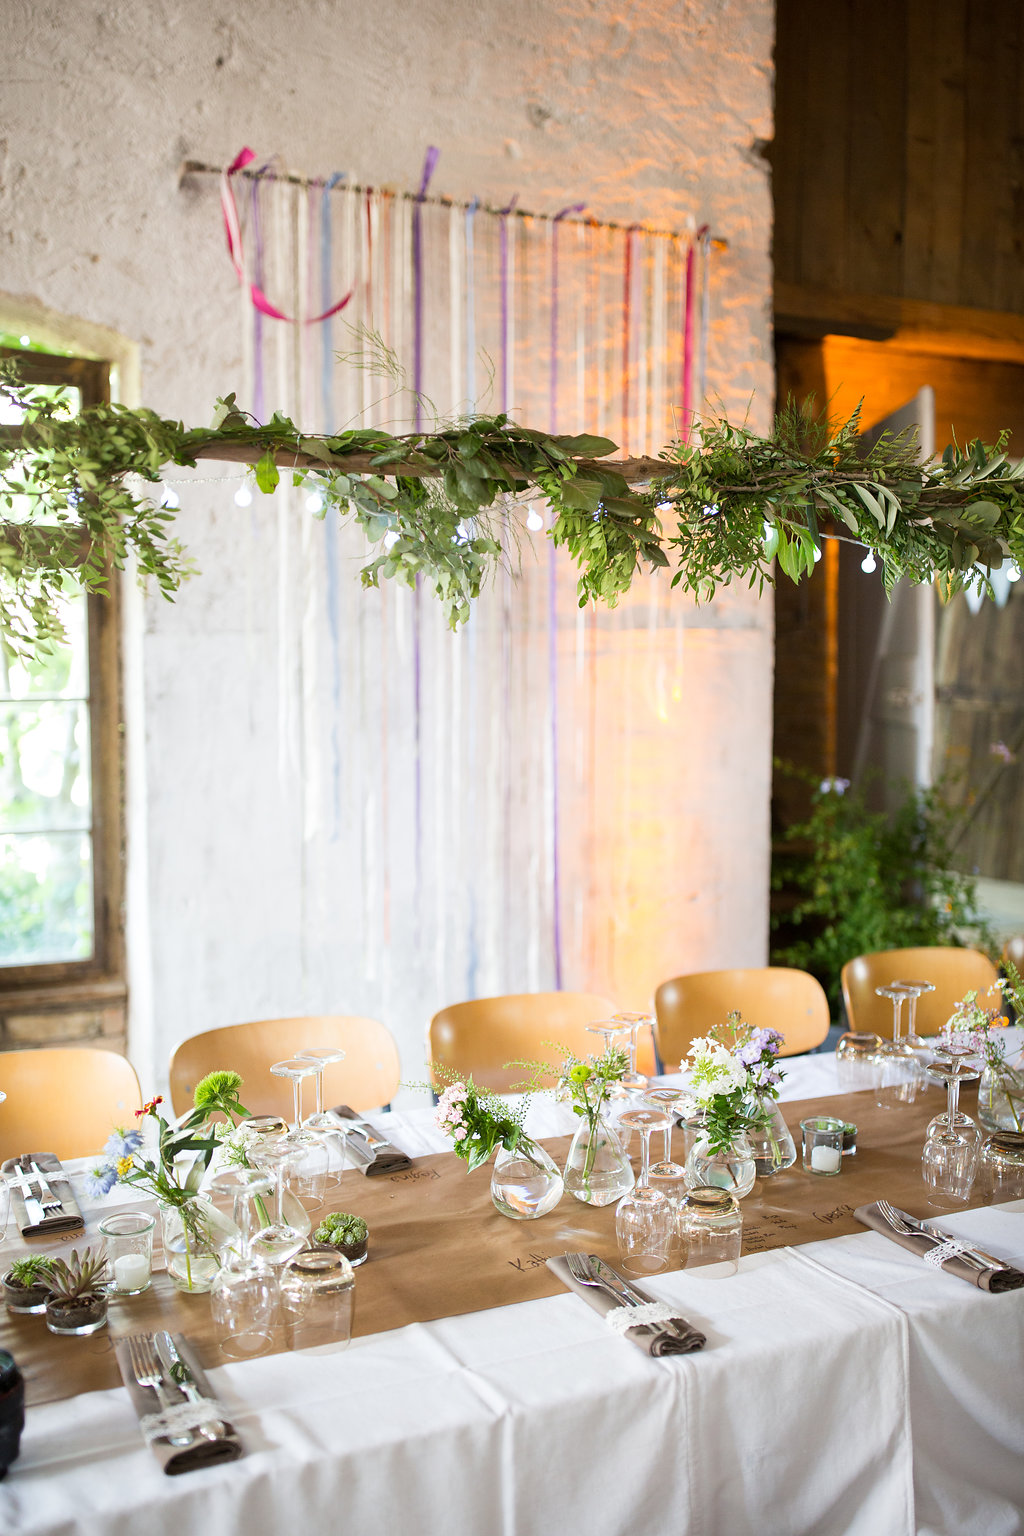 Hochzeitsdeko Landhausstil Rustikale Greenery Deko Hochzeitsblog The Little Wedding Corner